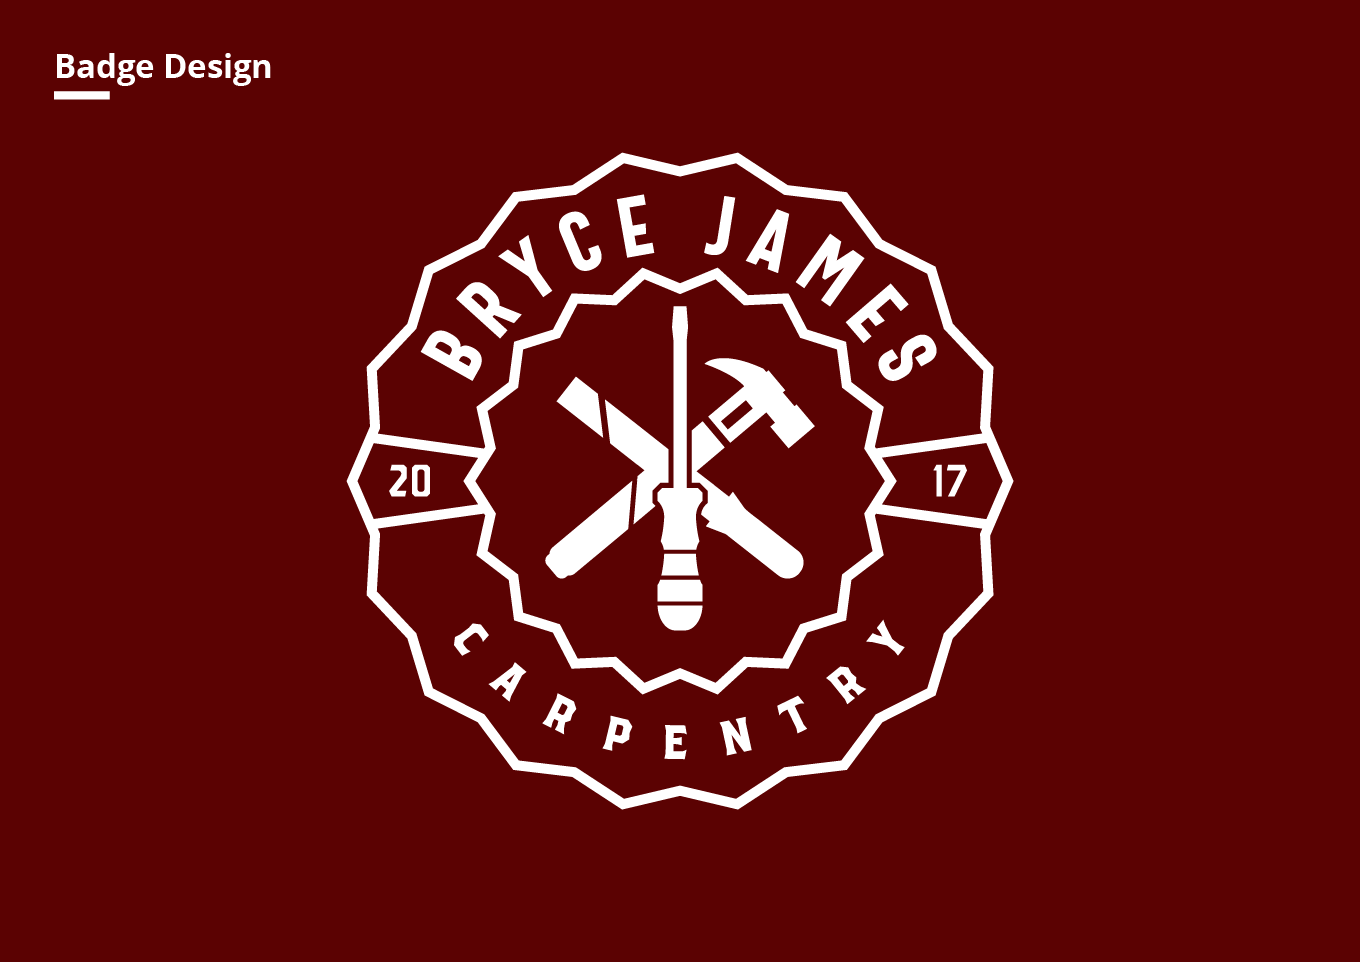 Bryce James Carpentry Badge design